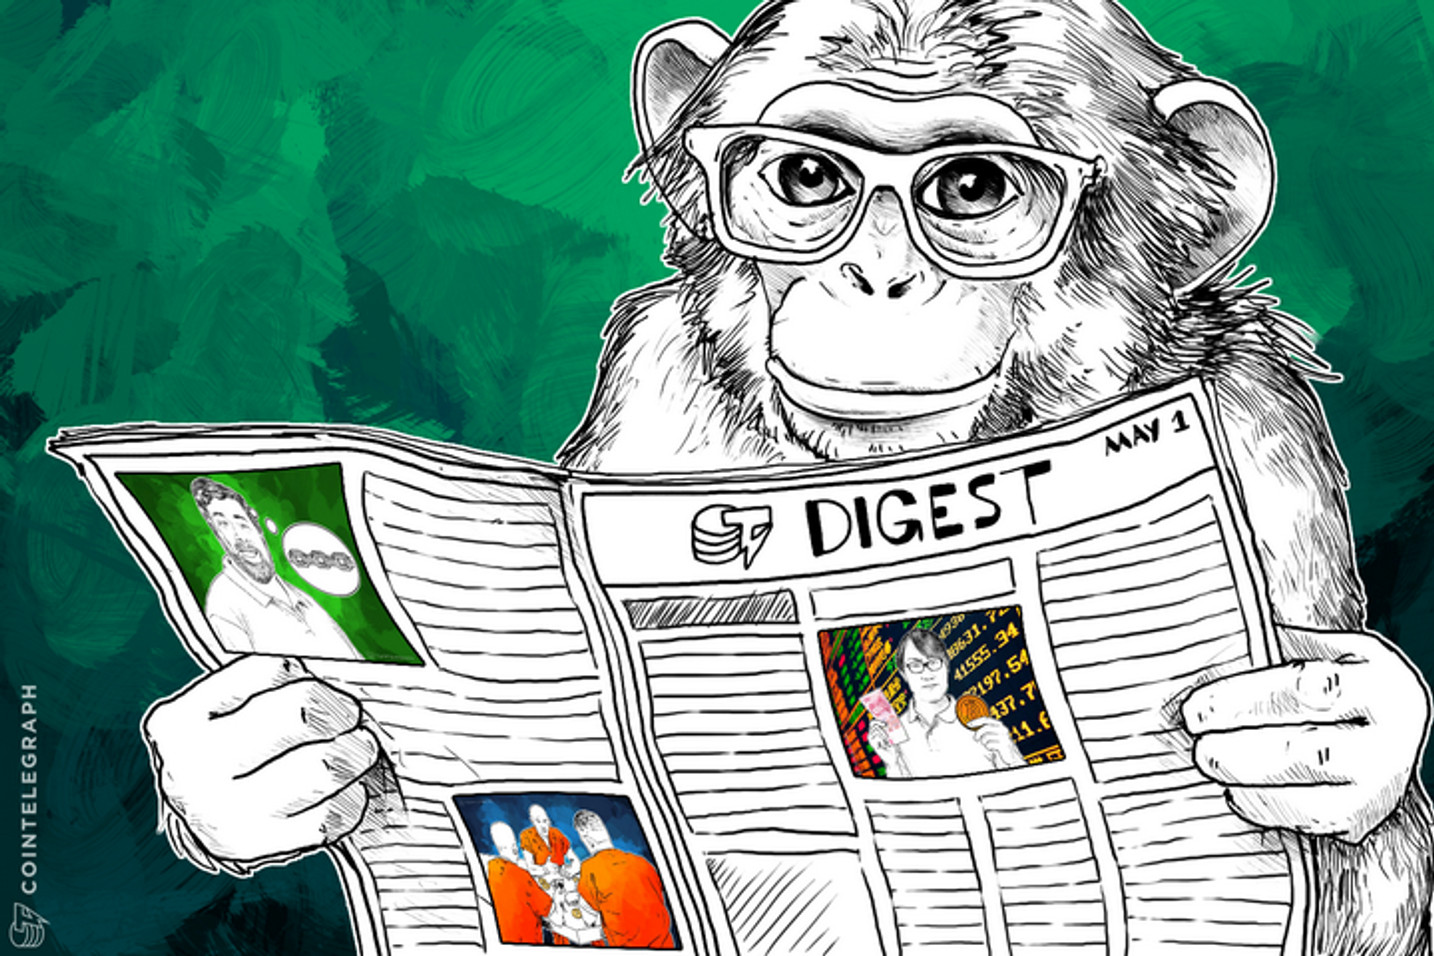 MAY 1 DIGEST: 21 Inc. to Embed ASIC Bitcoin Mining Chips Into Everyday Devices, BitGo Said to be Patenting Bitcoin Multisig